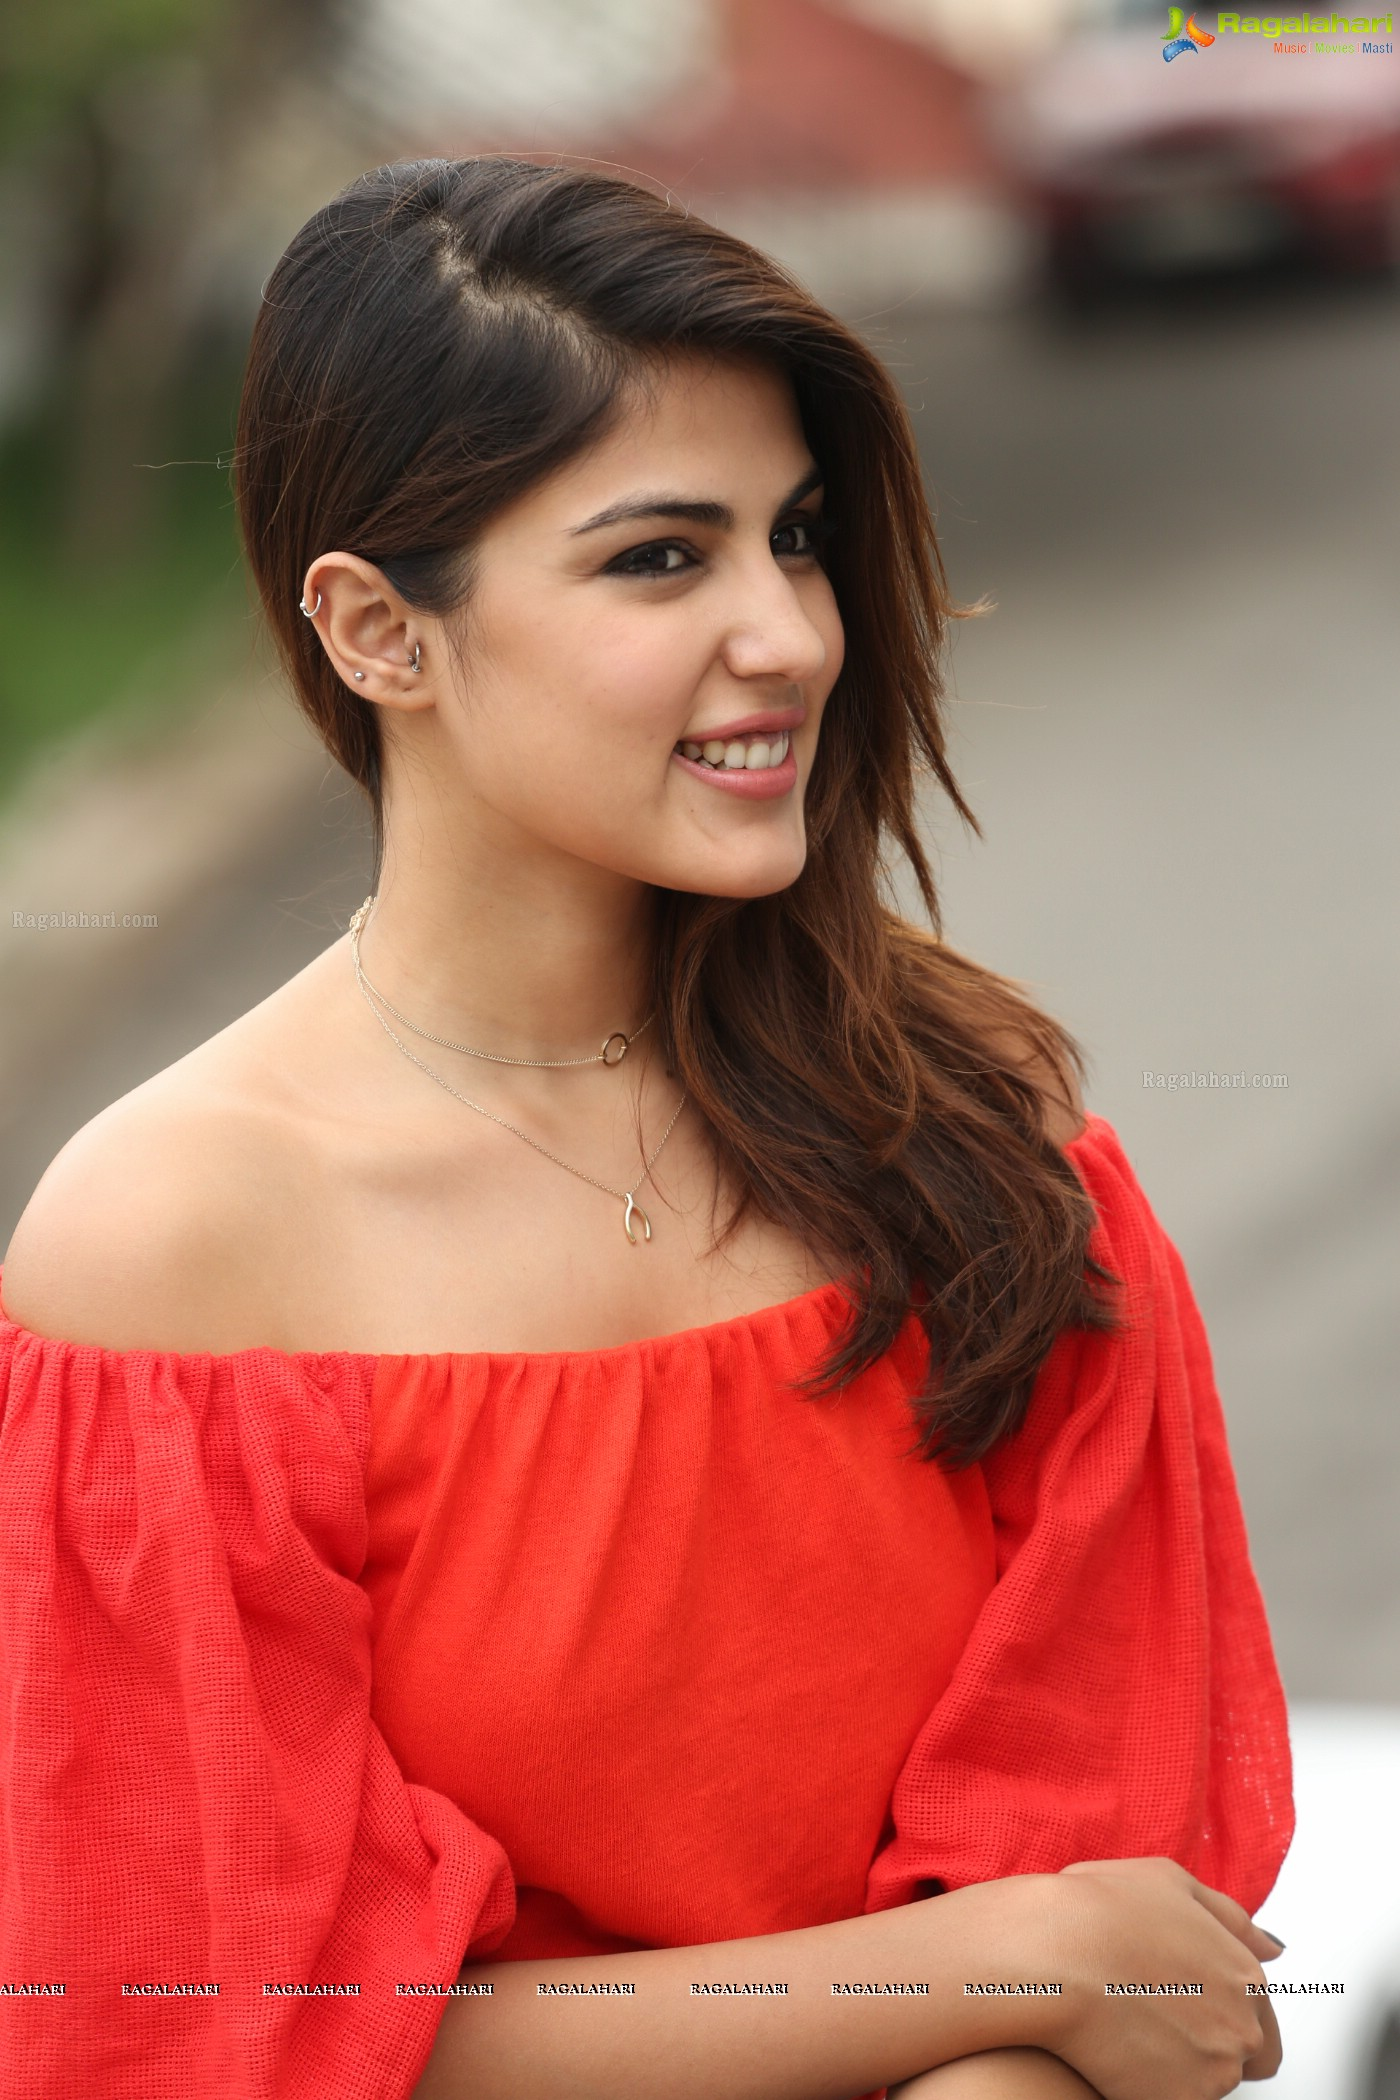 Rhea Chakraborty nude (36 pictures) Fappening, Instagram, butt